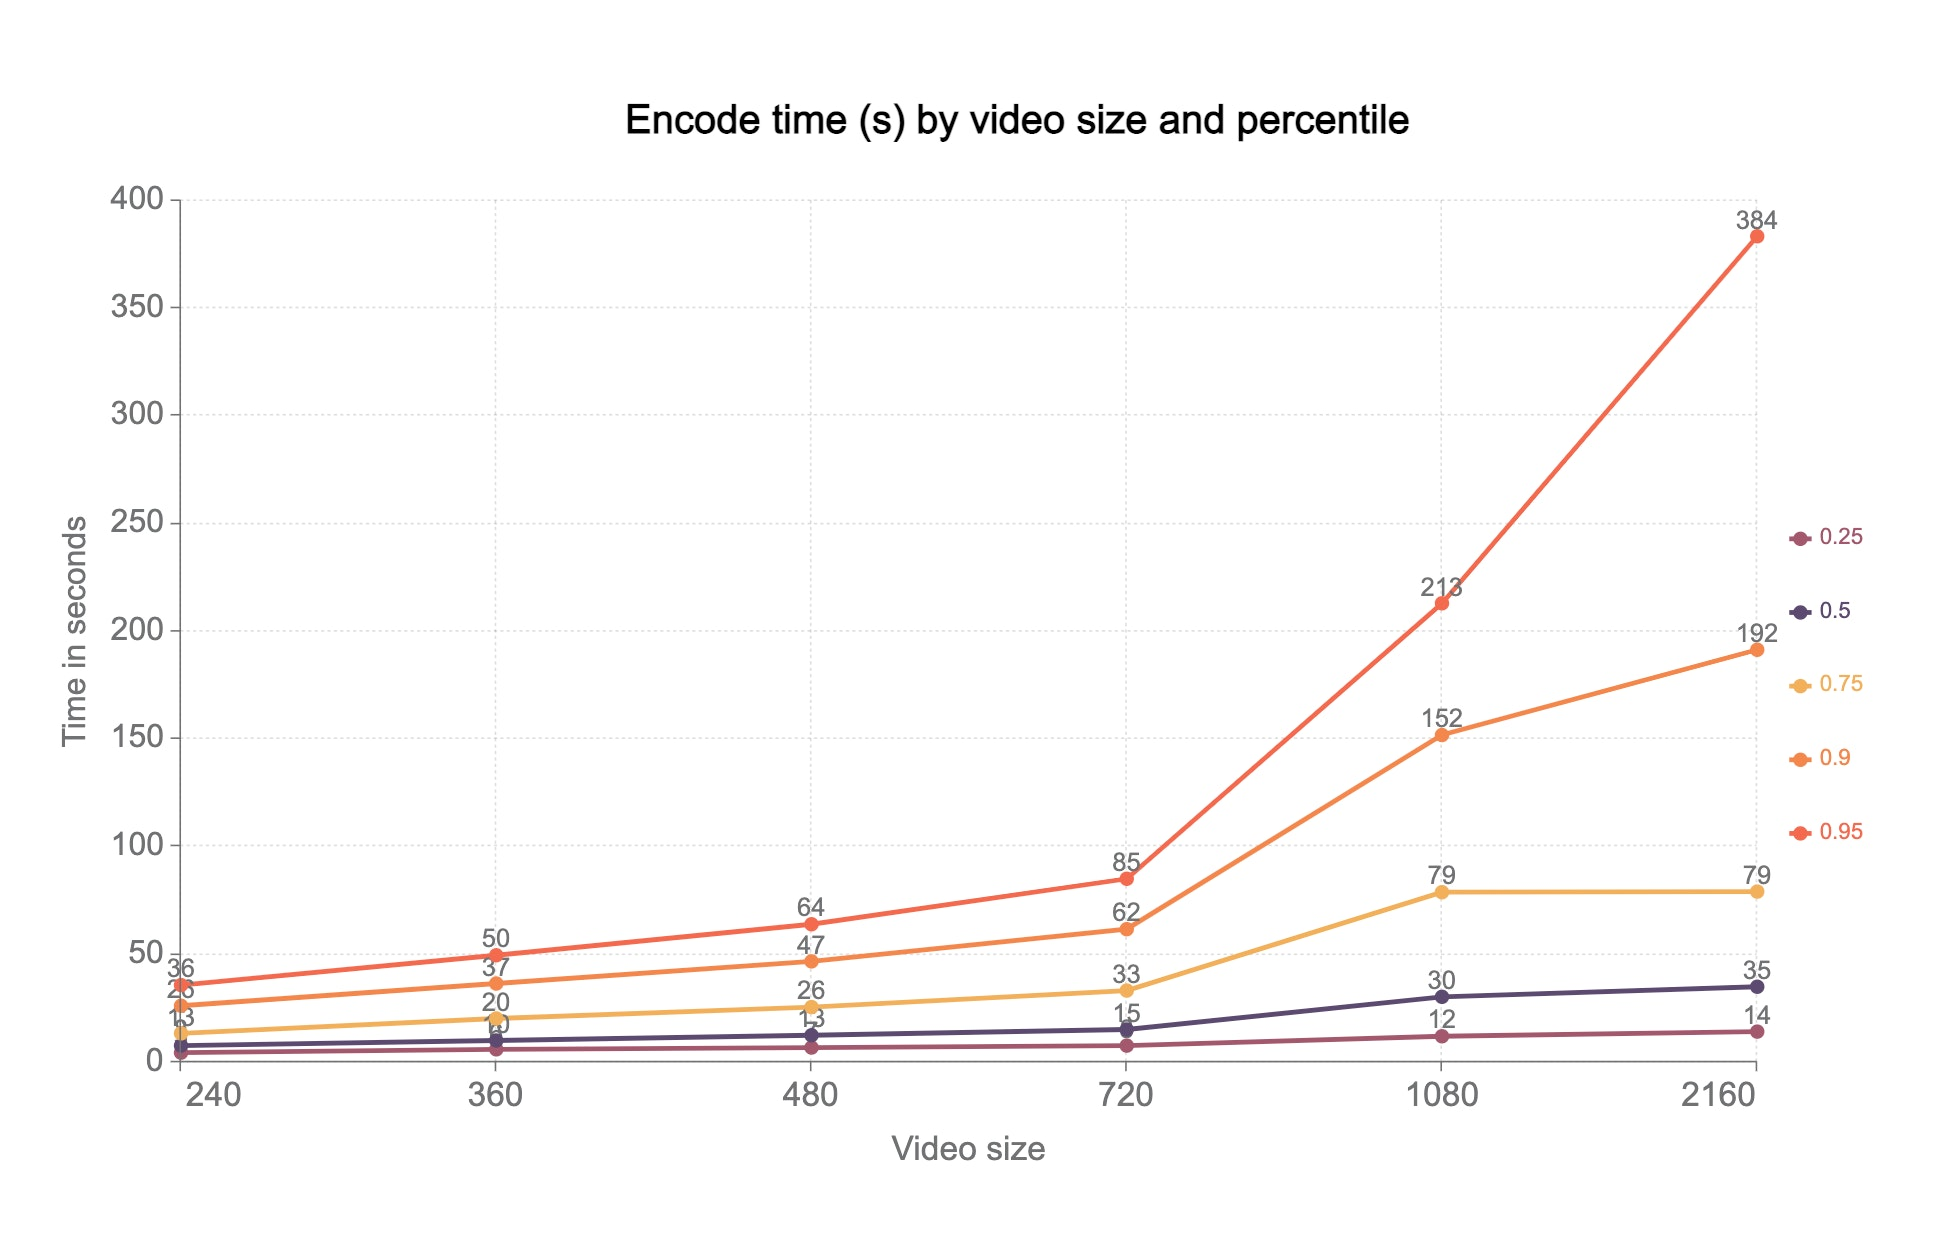 encoding times for videos 0-5 minutes